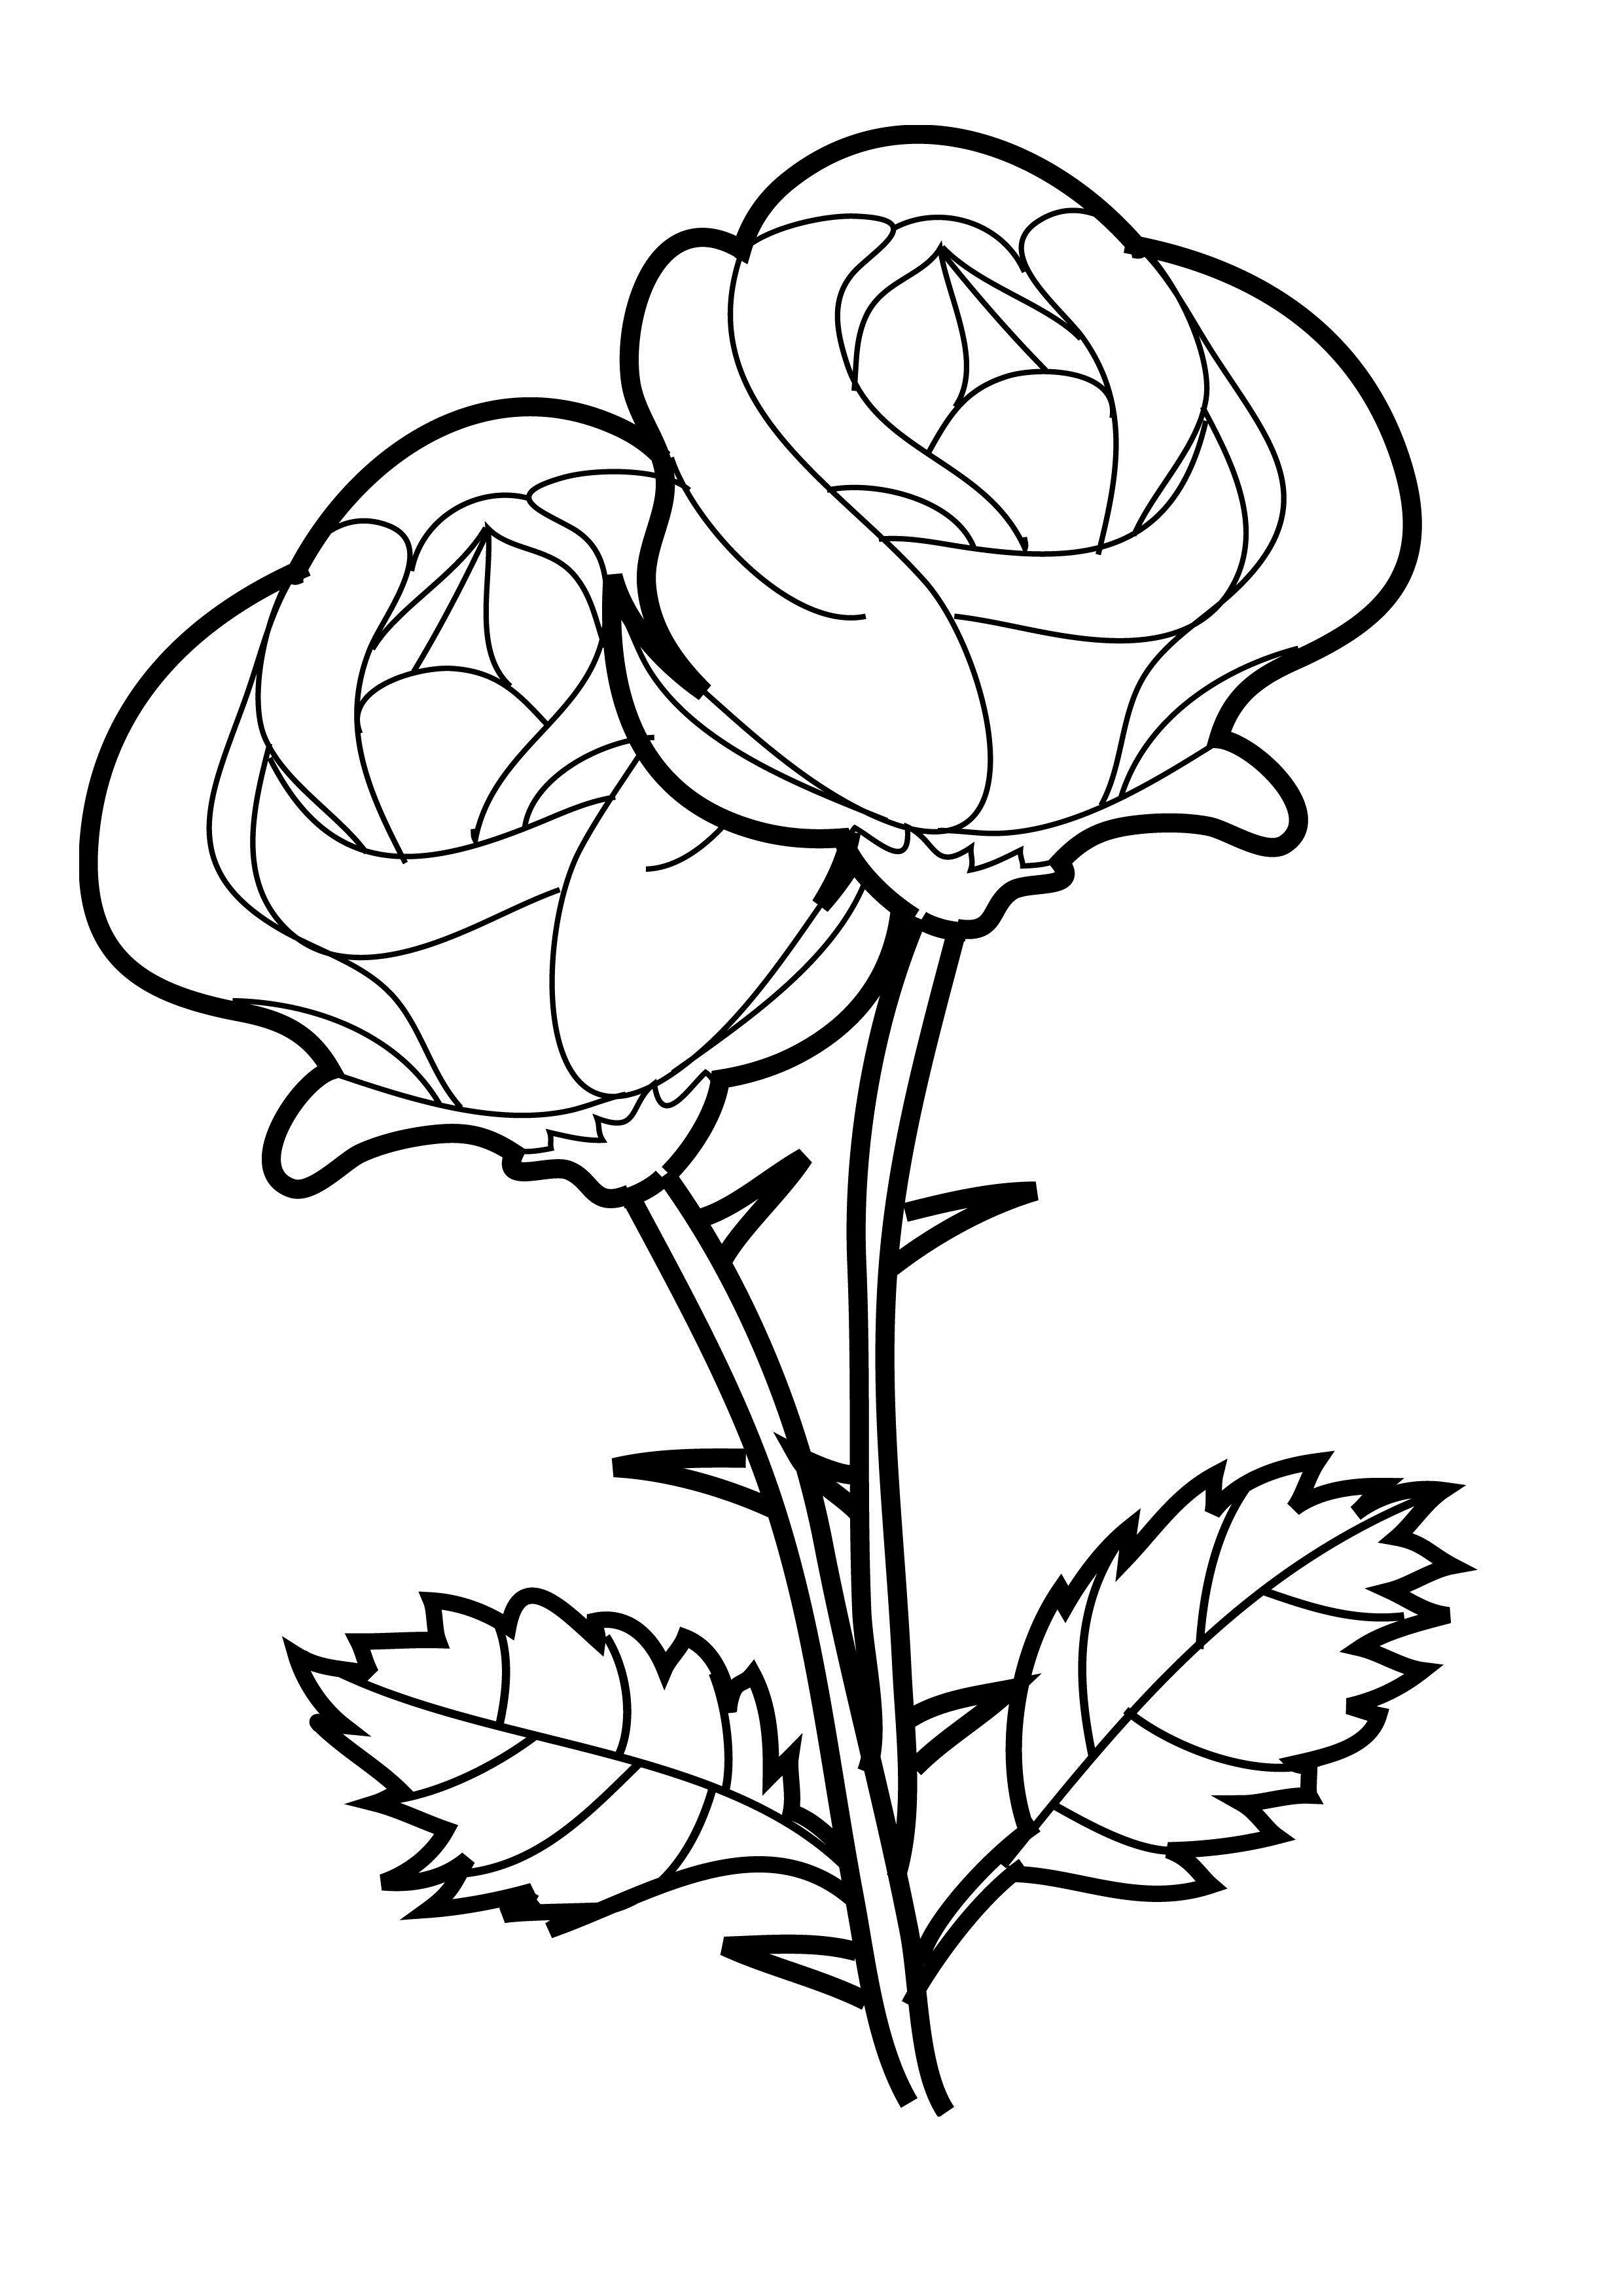 rose coloring pages for kids - photo#4